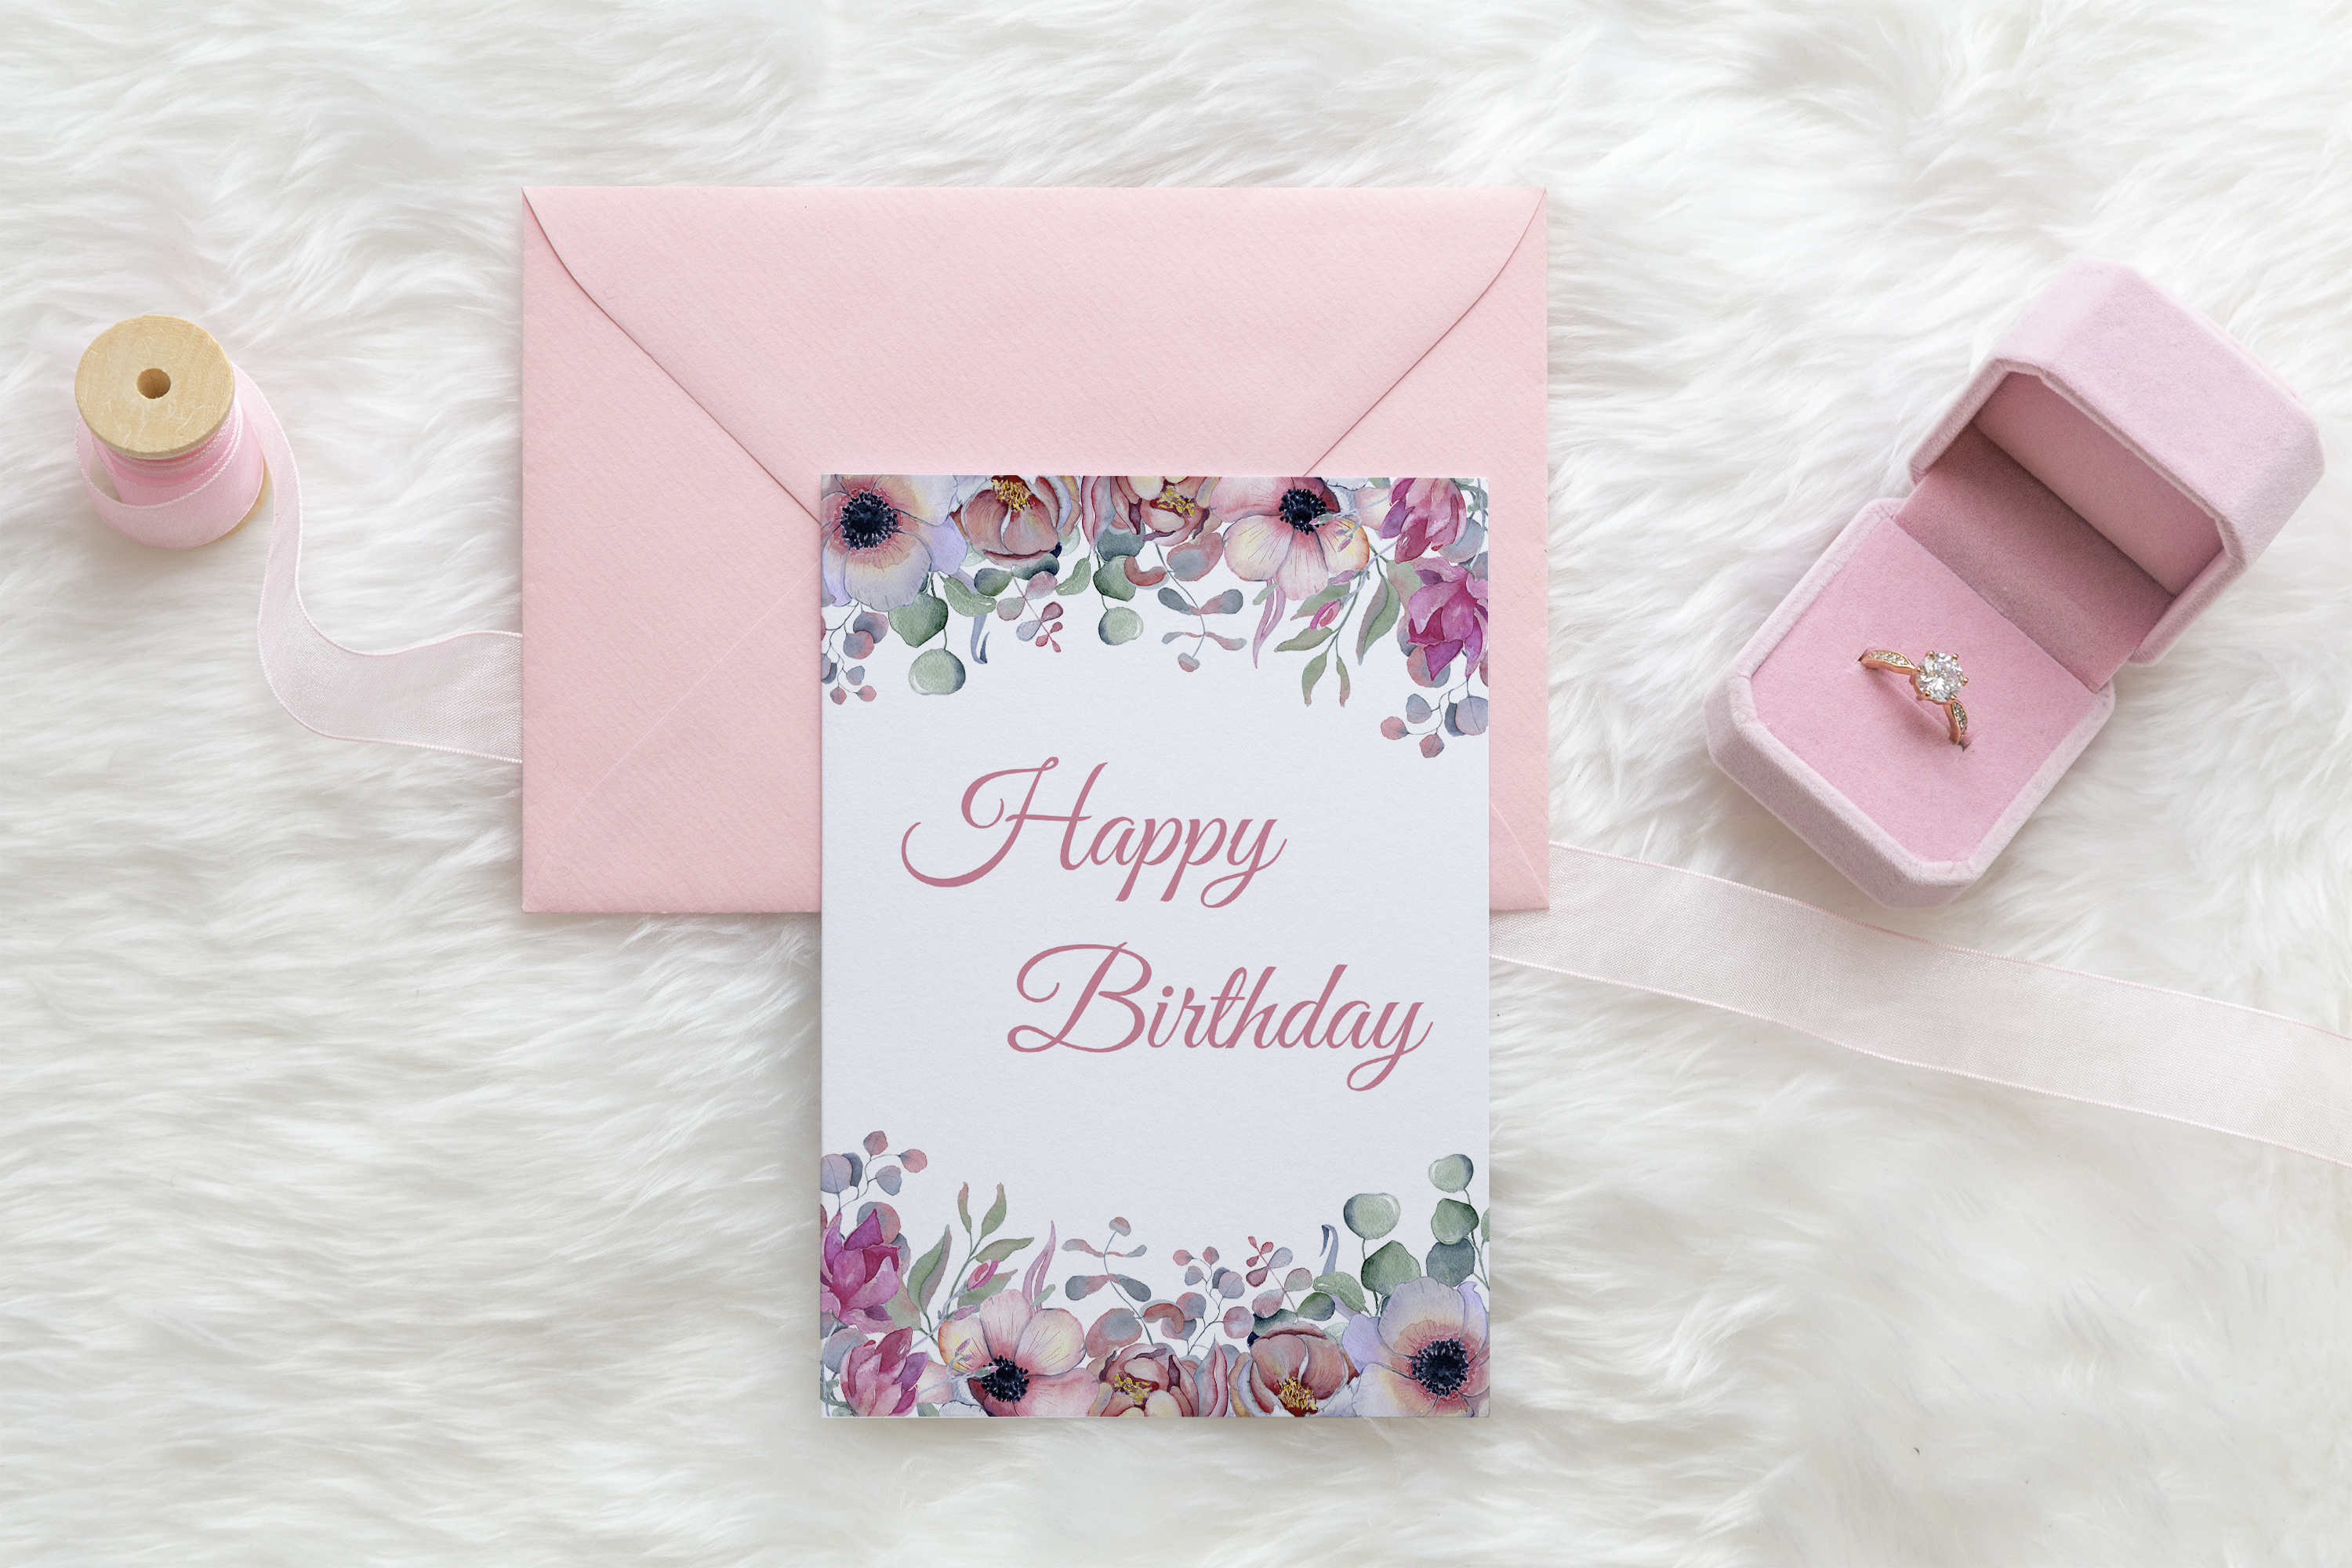 Card Mockup, with pink envelope PSD example image 4